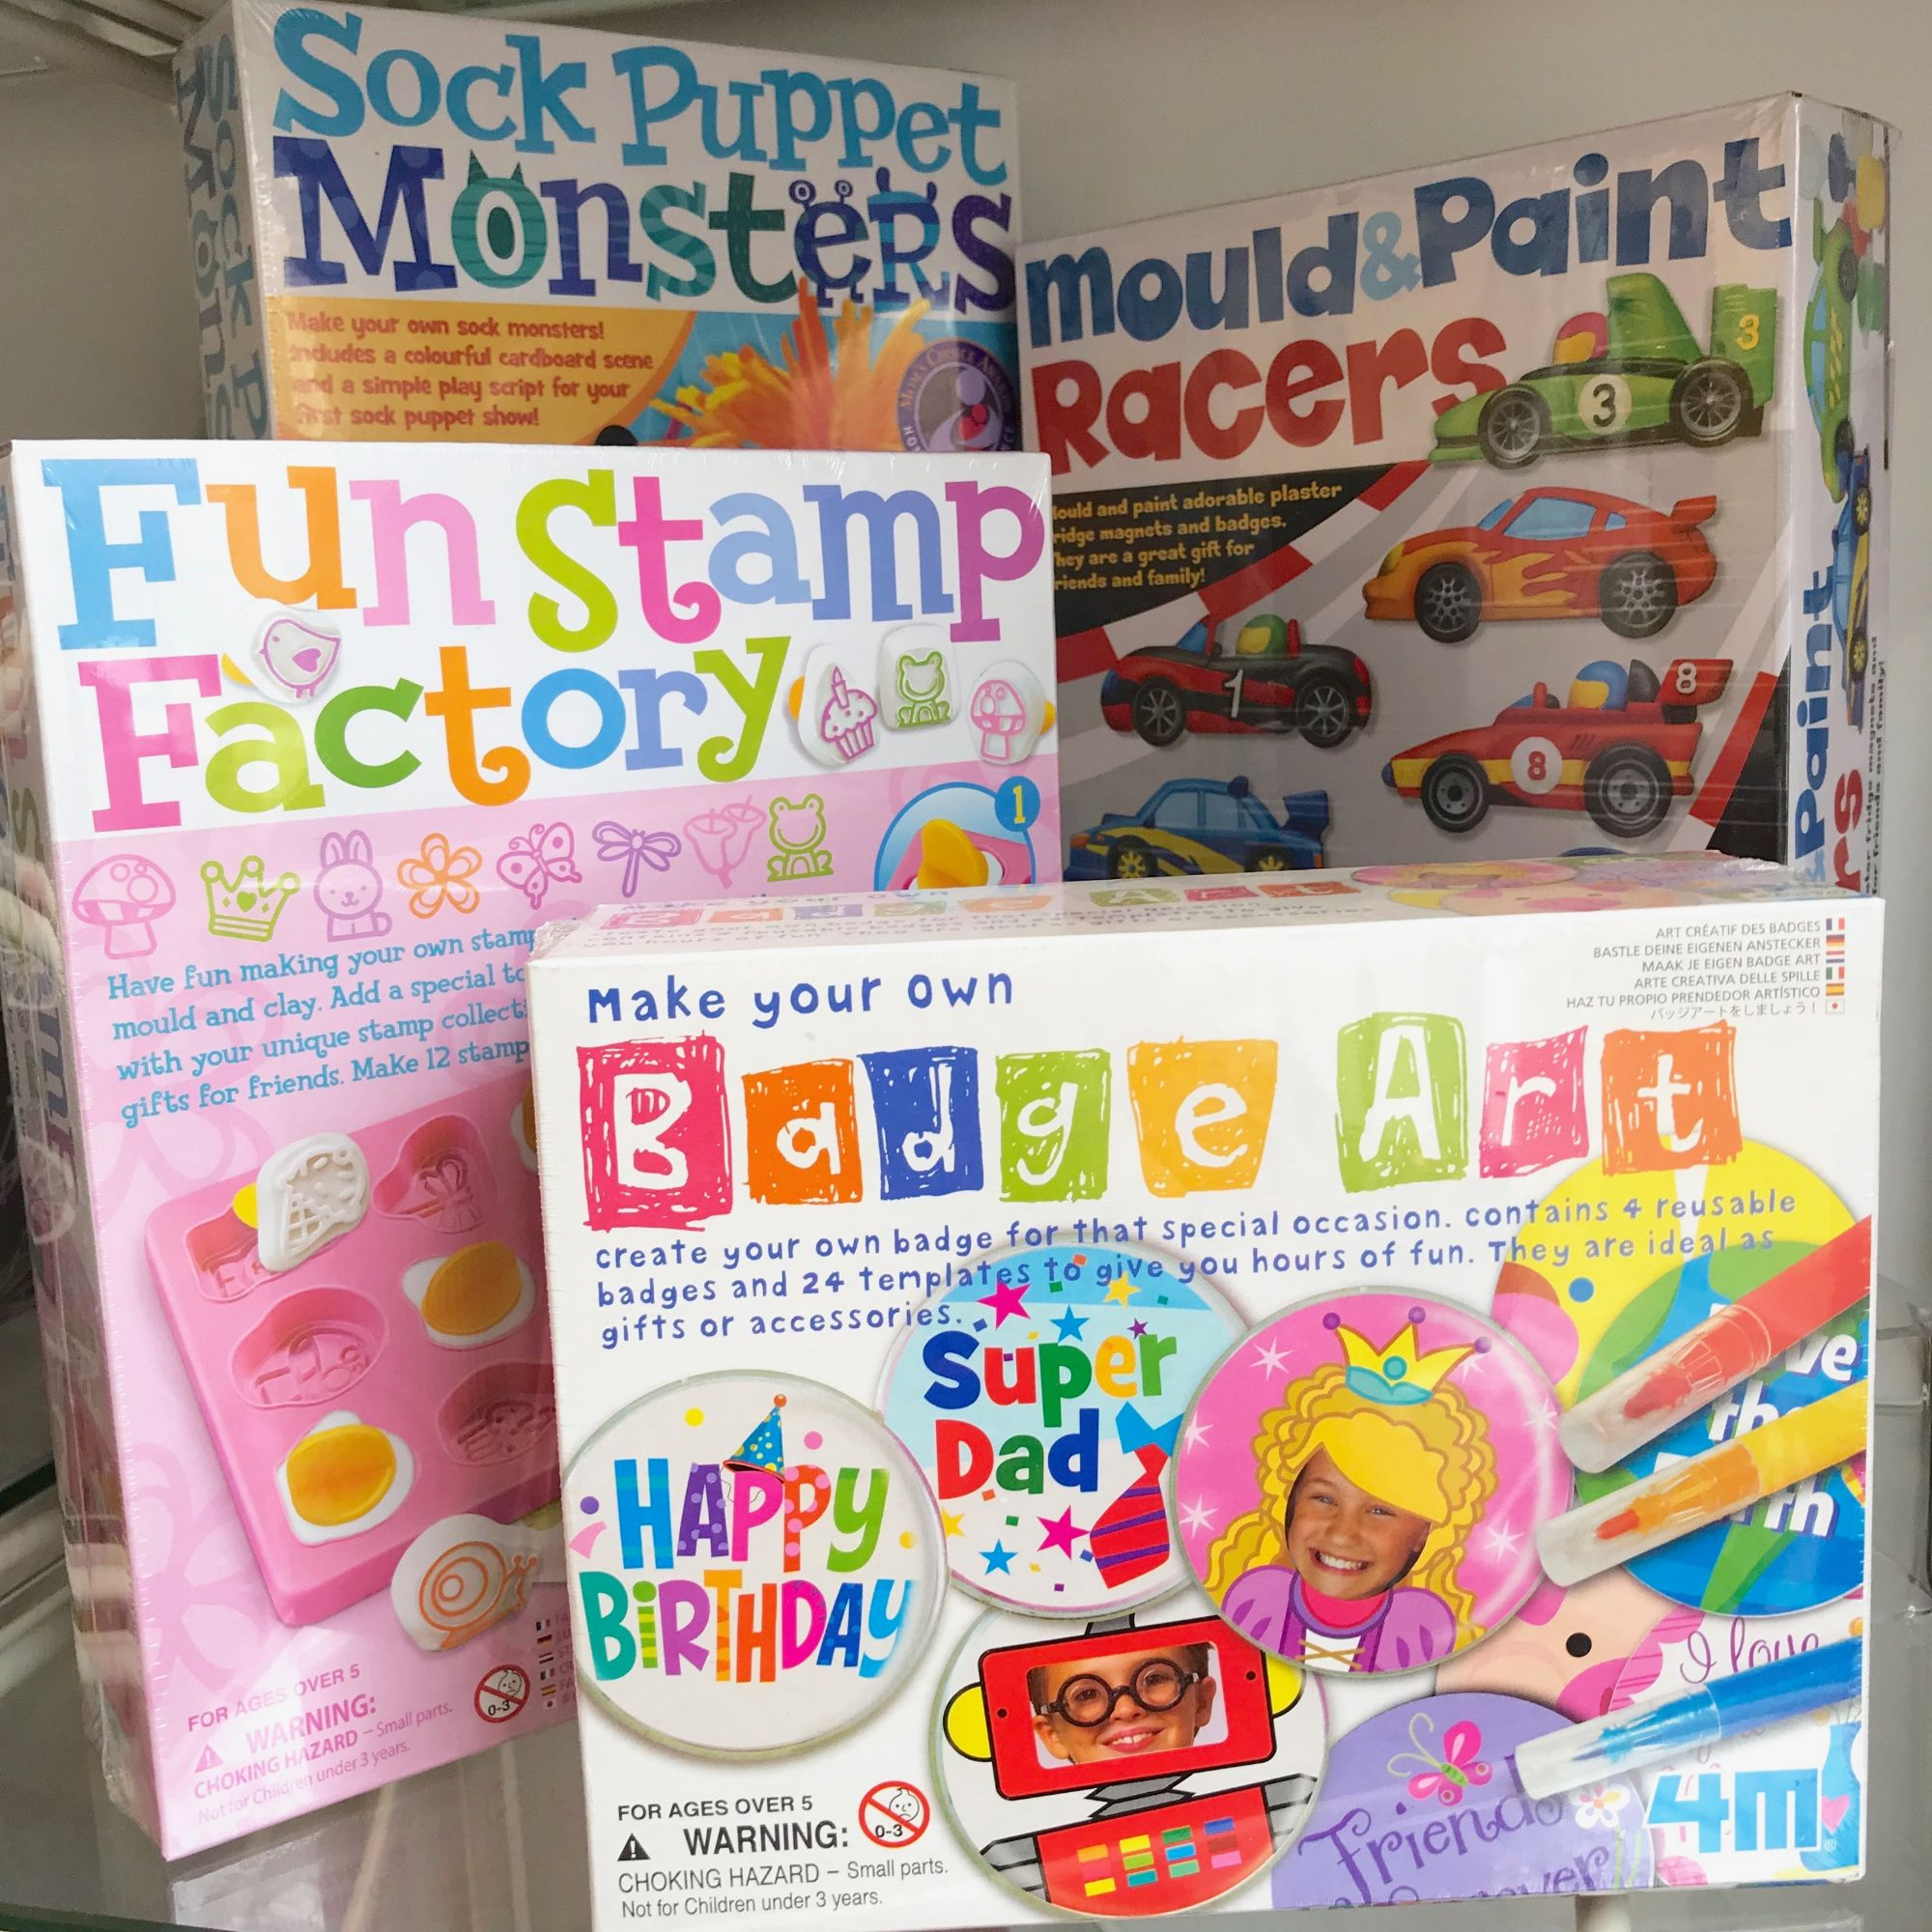 Great Gizmos have exciting making and doing kits for children